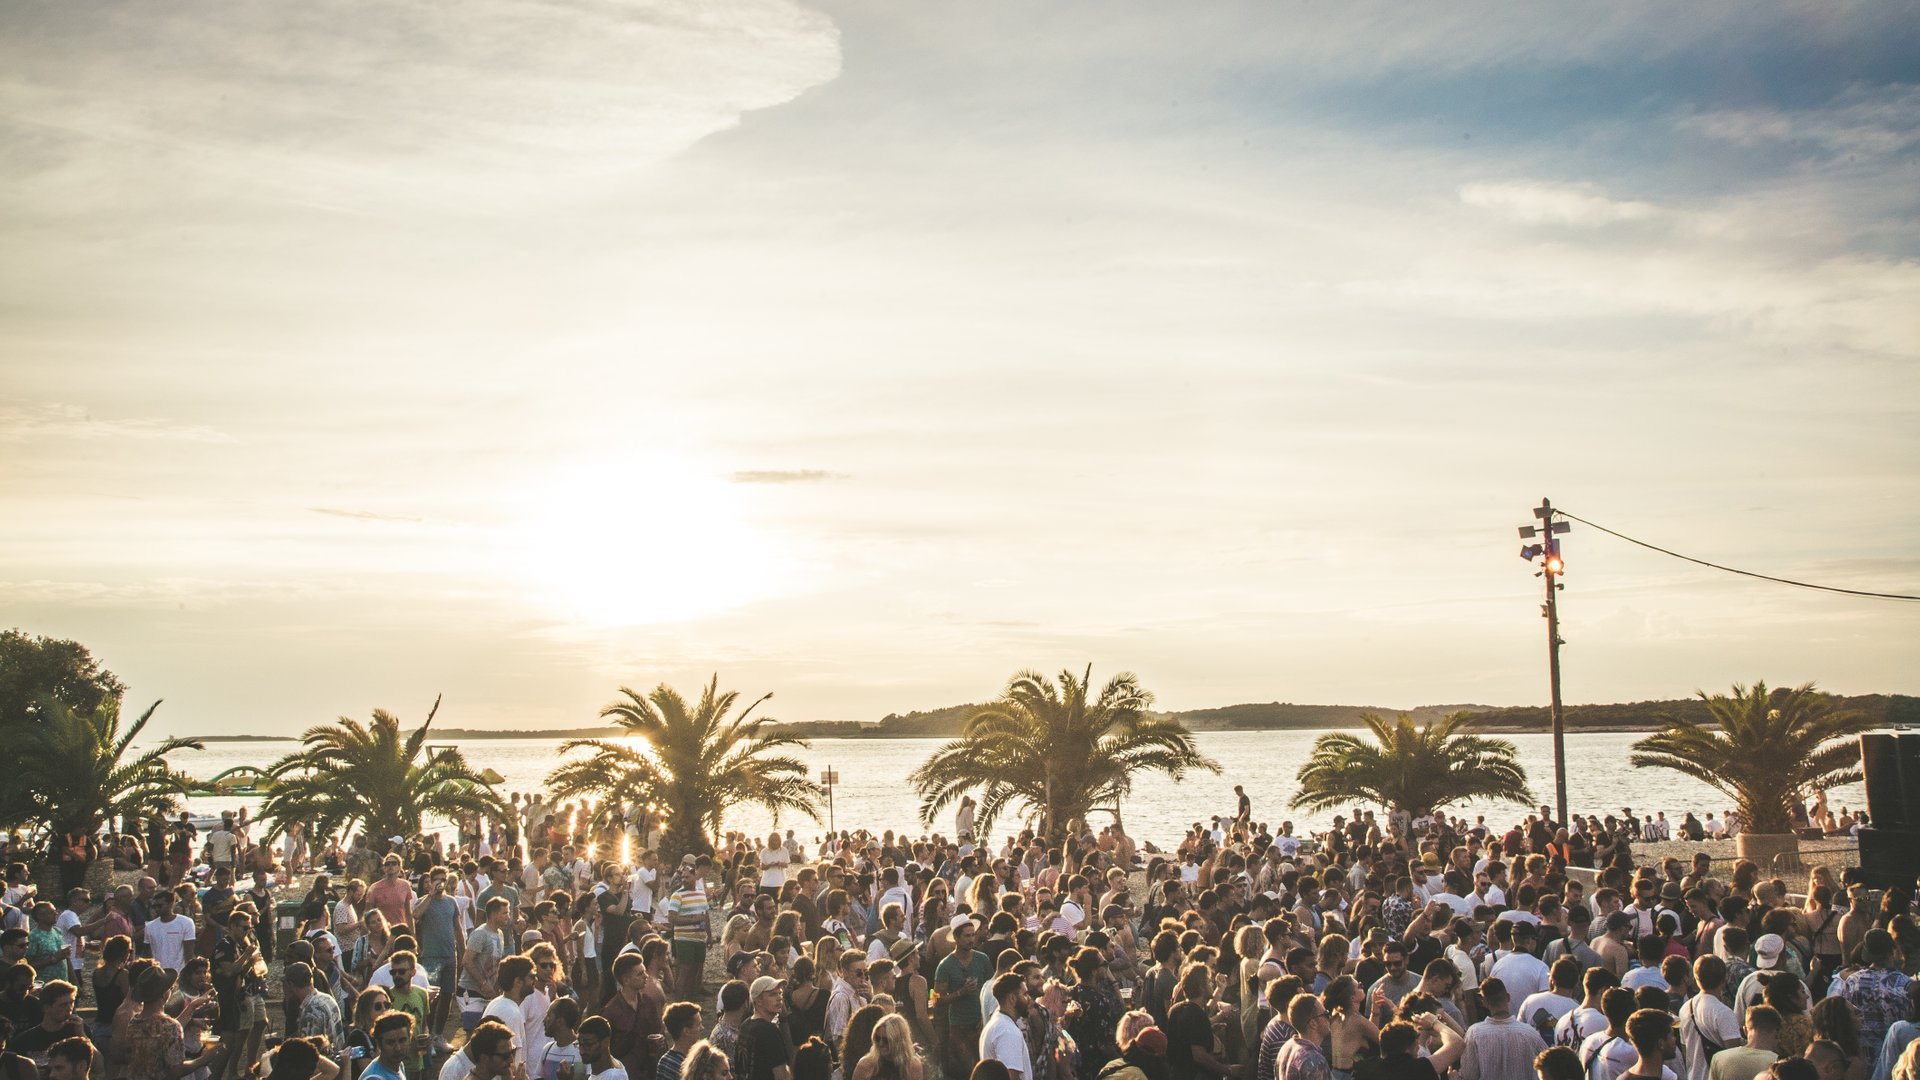 Best time to see Dimensions Festival in Croatia 2019